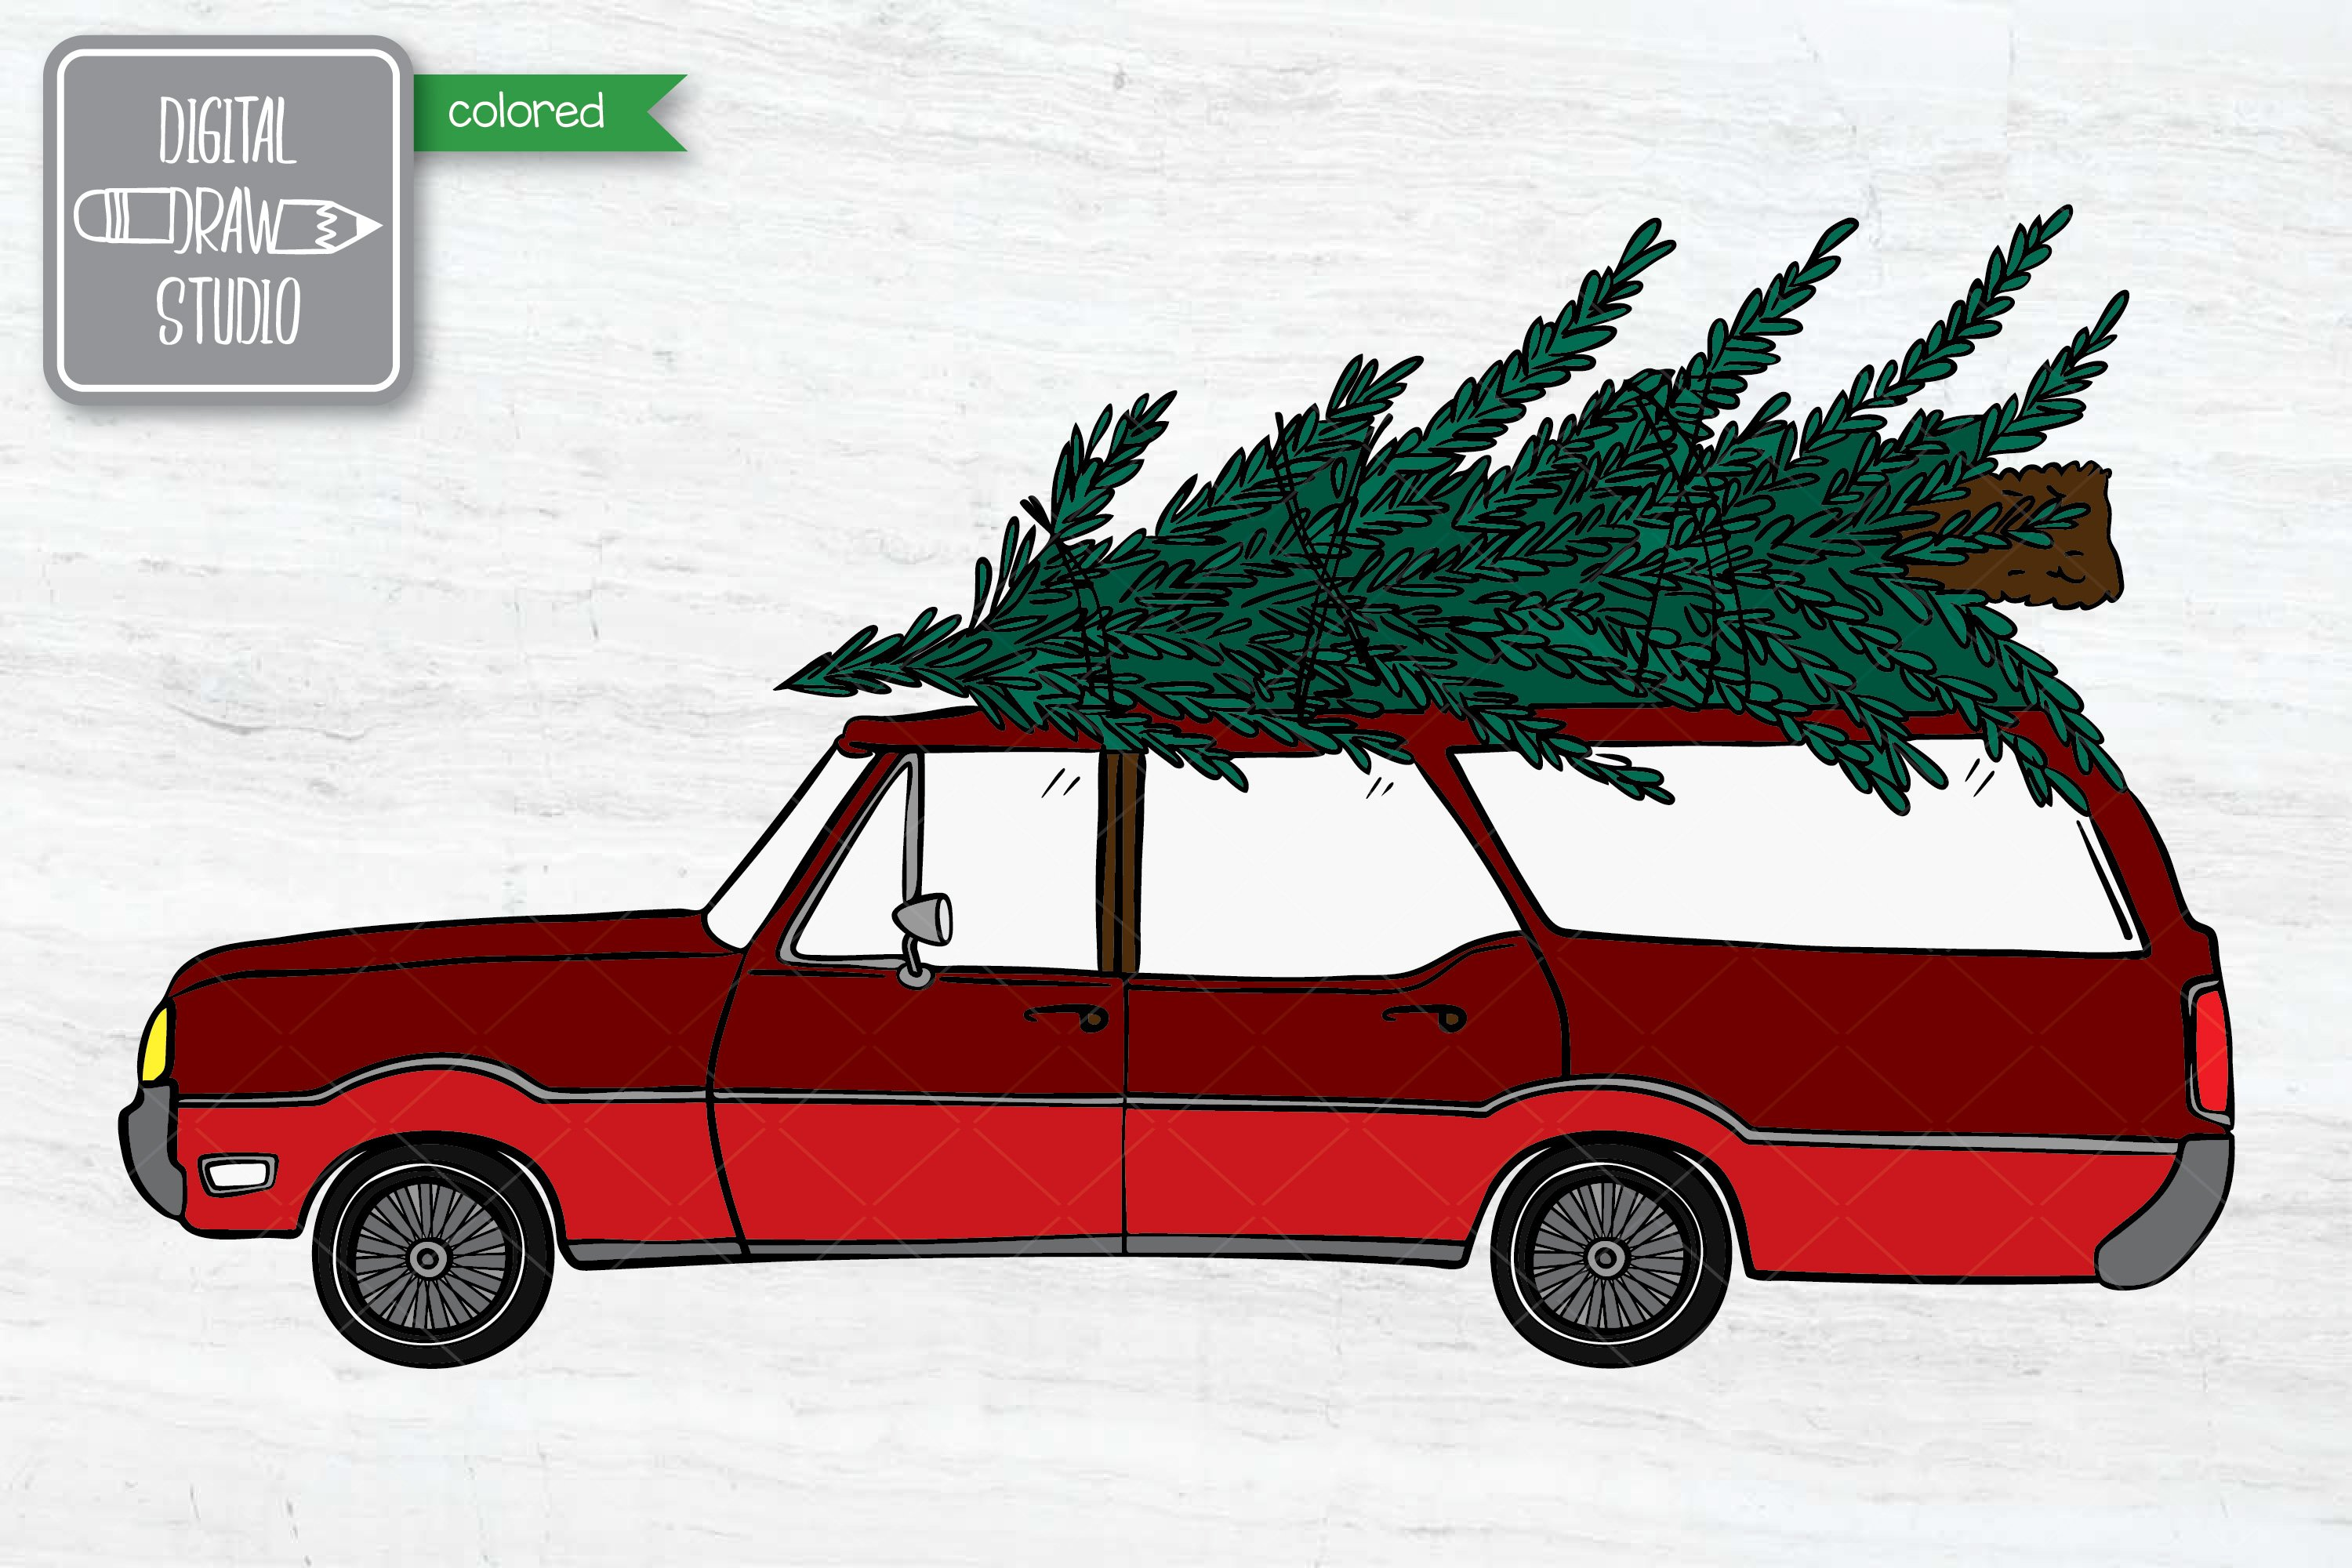 Color Station Wagon Car Christmas | Tree on Roof Top Holiday example image 3